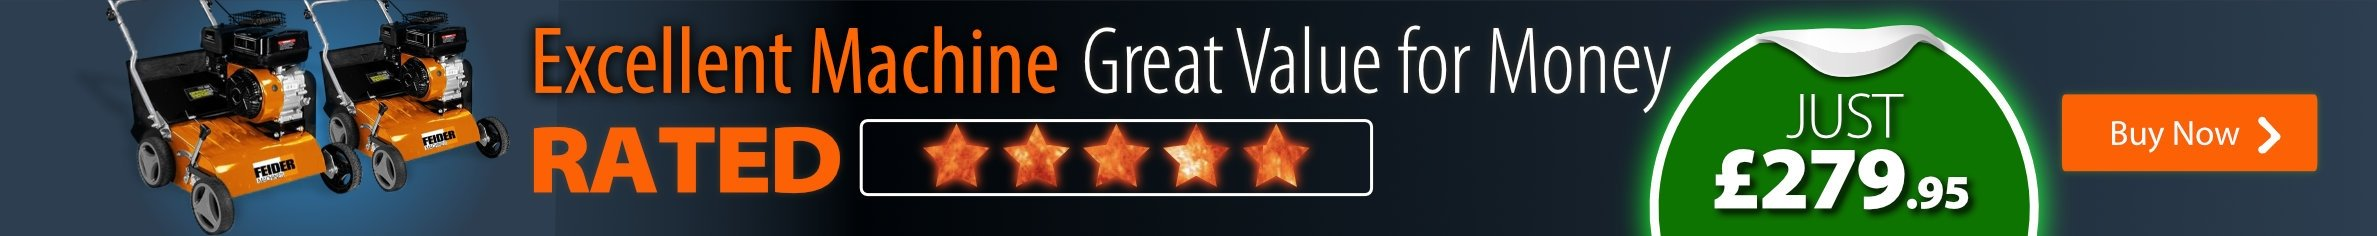 Rated Five Stars by Our Customers - Excellent Machine - 279.95